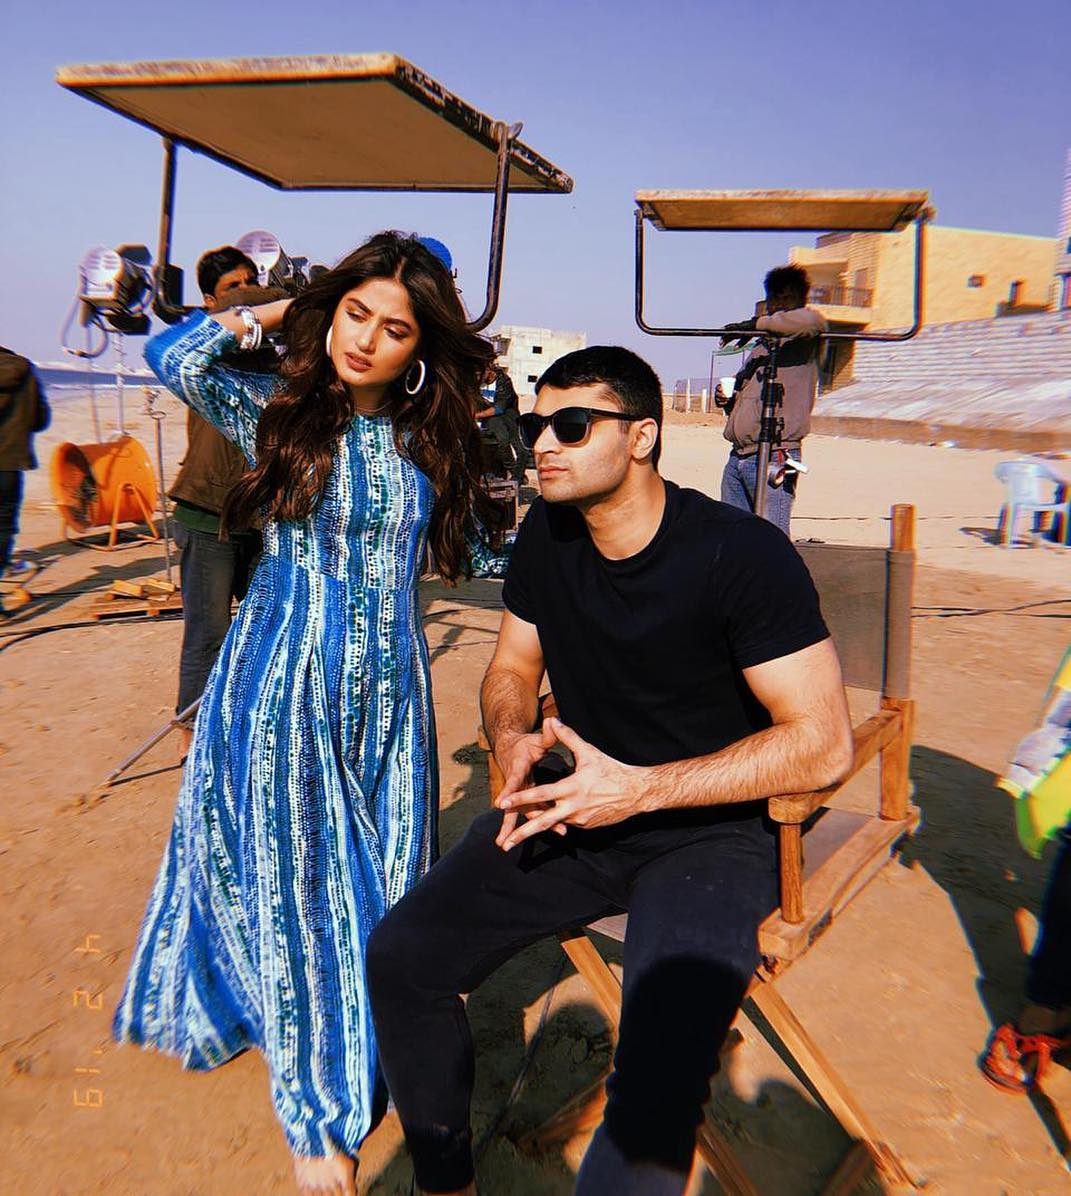 New Awesome Photos of Sajal Aly at Beach for Photoshoot of an upcoming Project